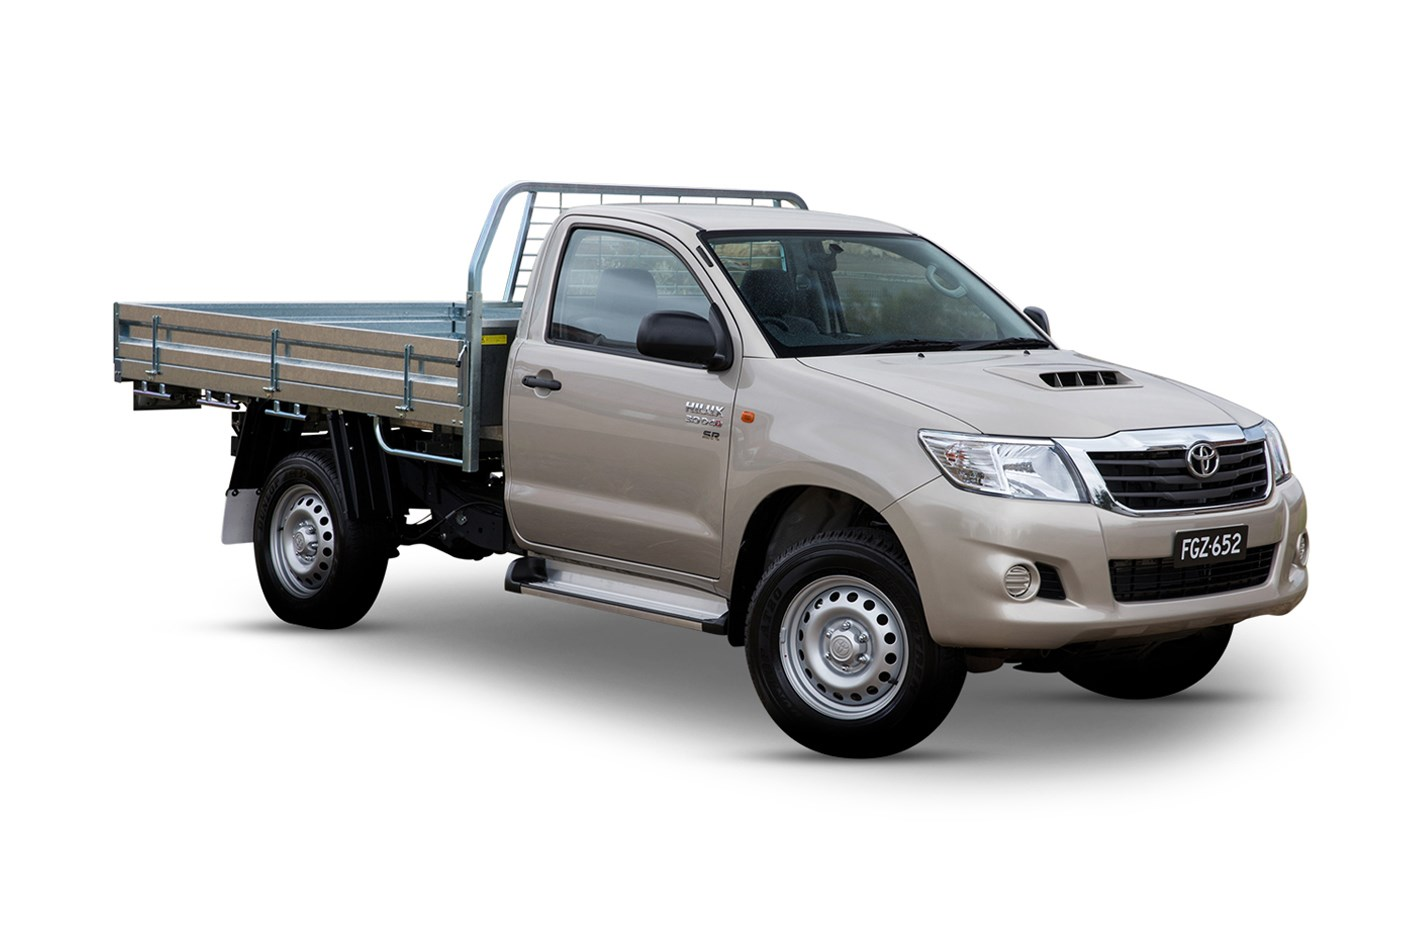 2016 toyota hilux sr 4x4 cab chassis review caradvice - 2017 Toyota Hilux Sr 4x4 C Chas